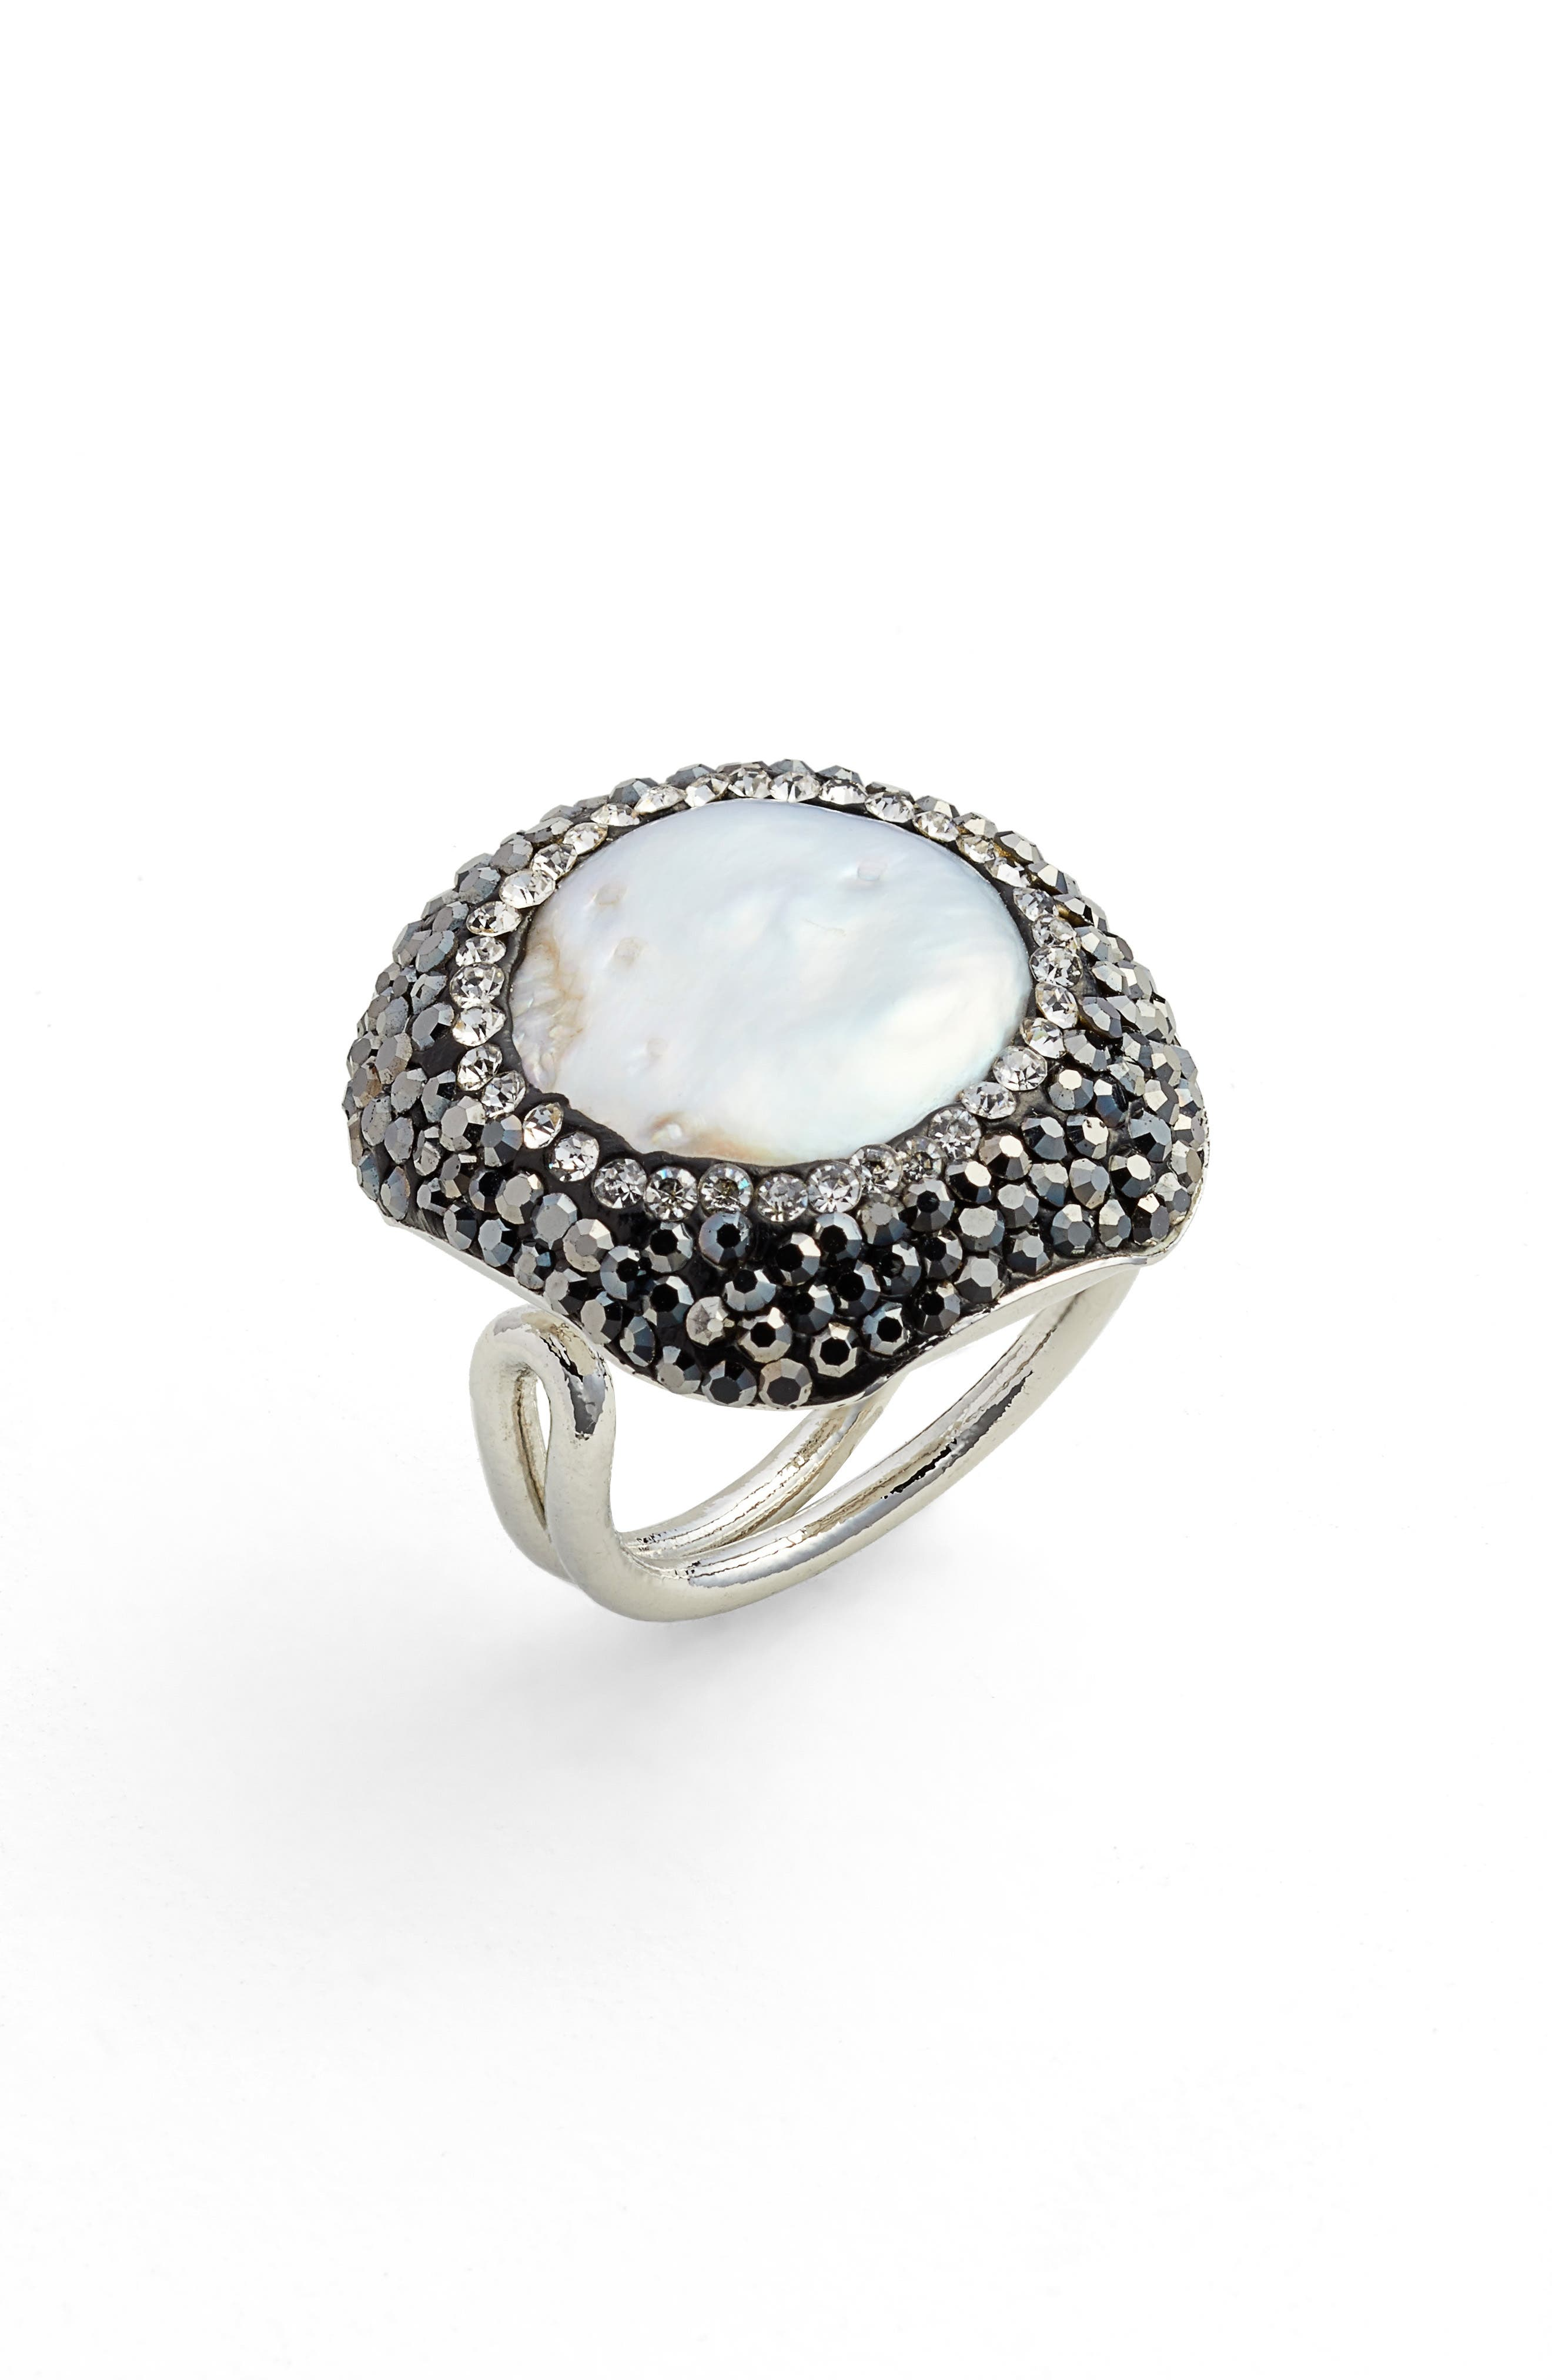 Clarinet Mother-of-Pearl & Crystal Adjustable Ring,                         Main,                         color, Pearl